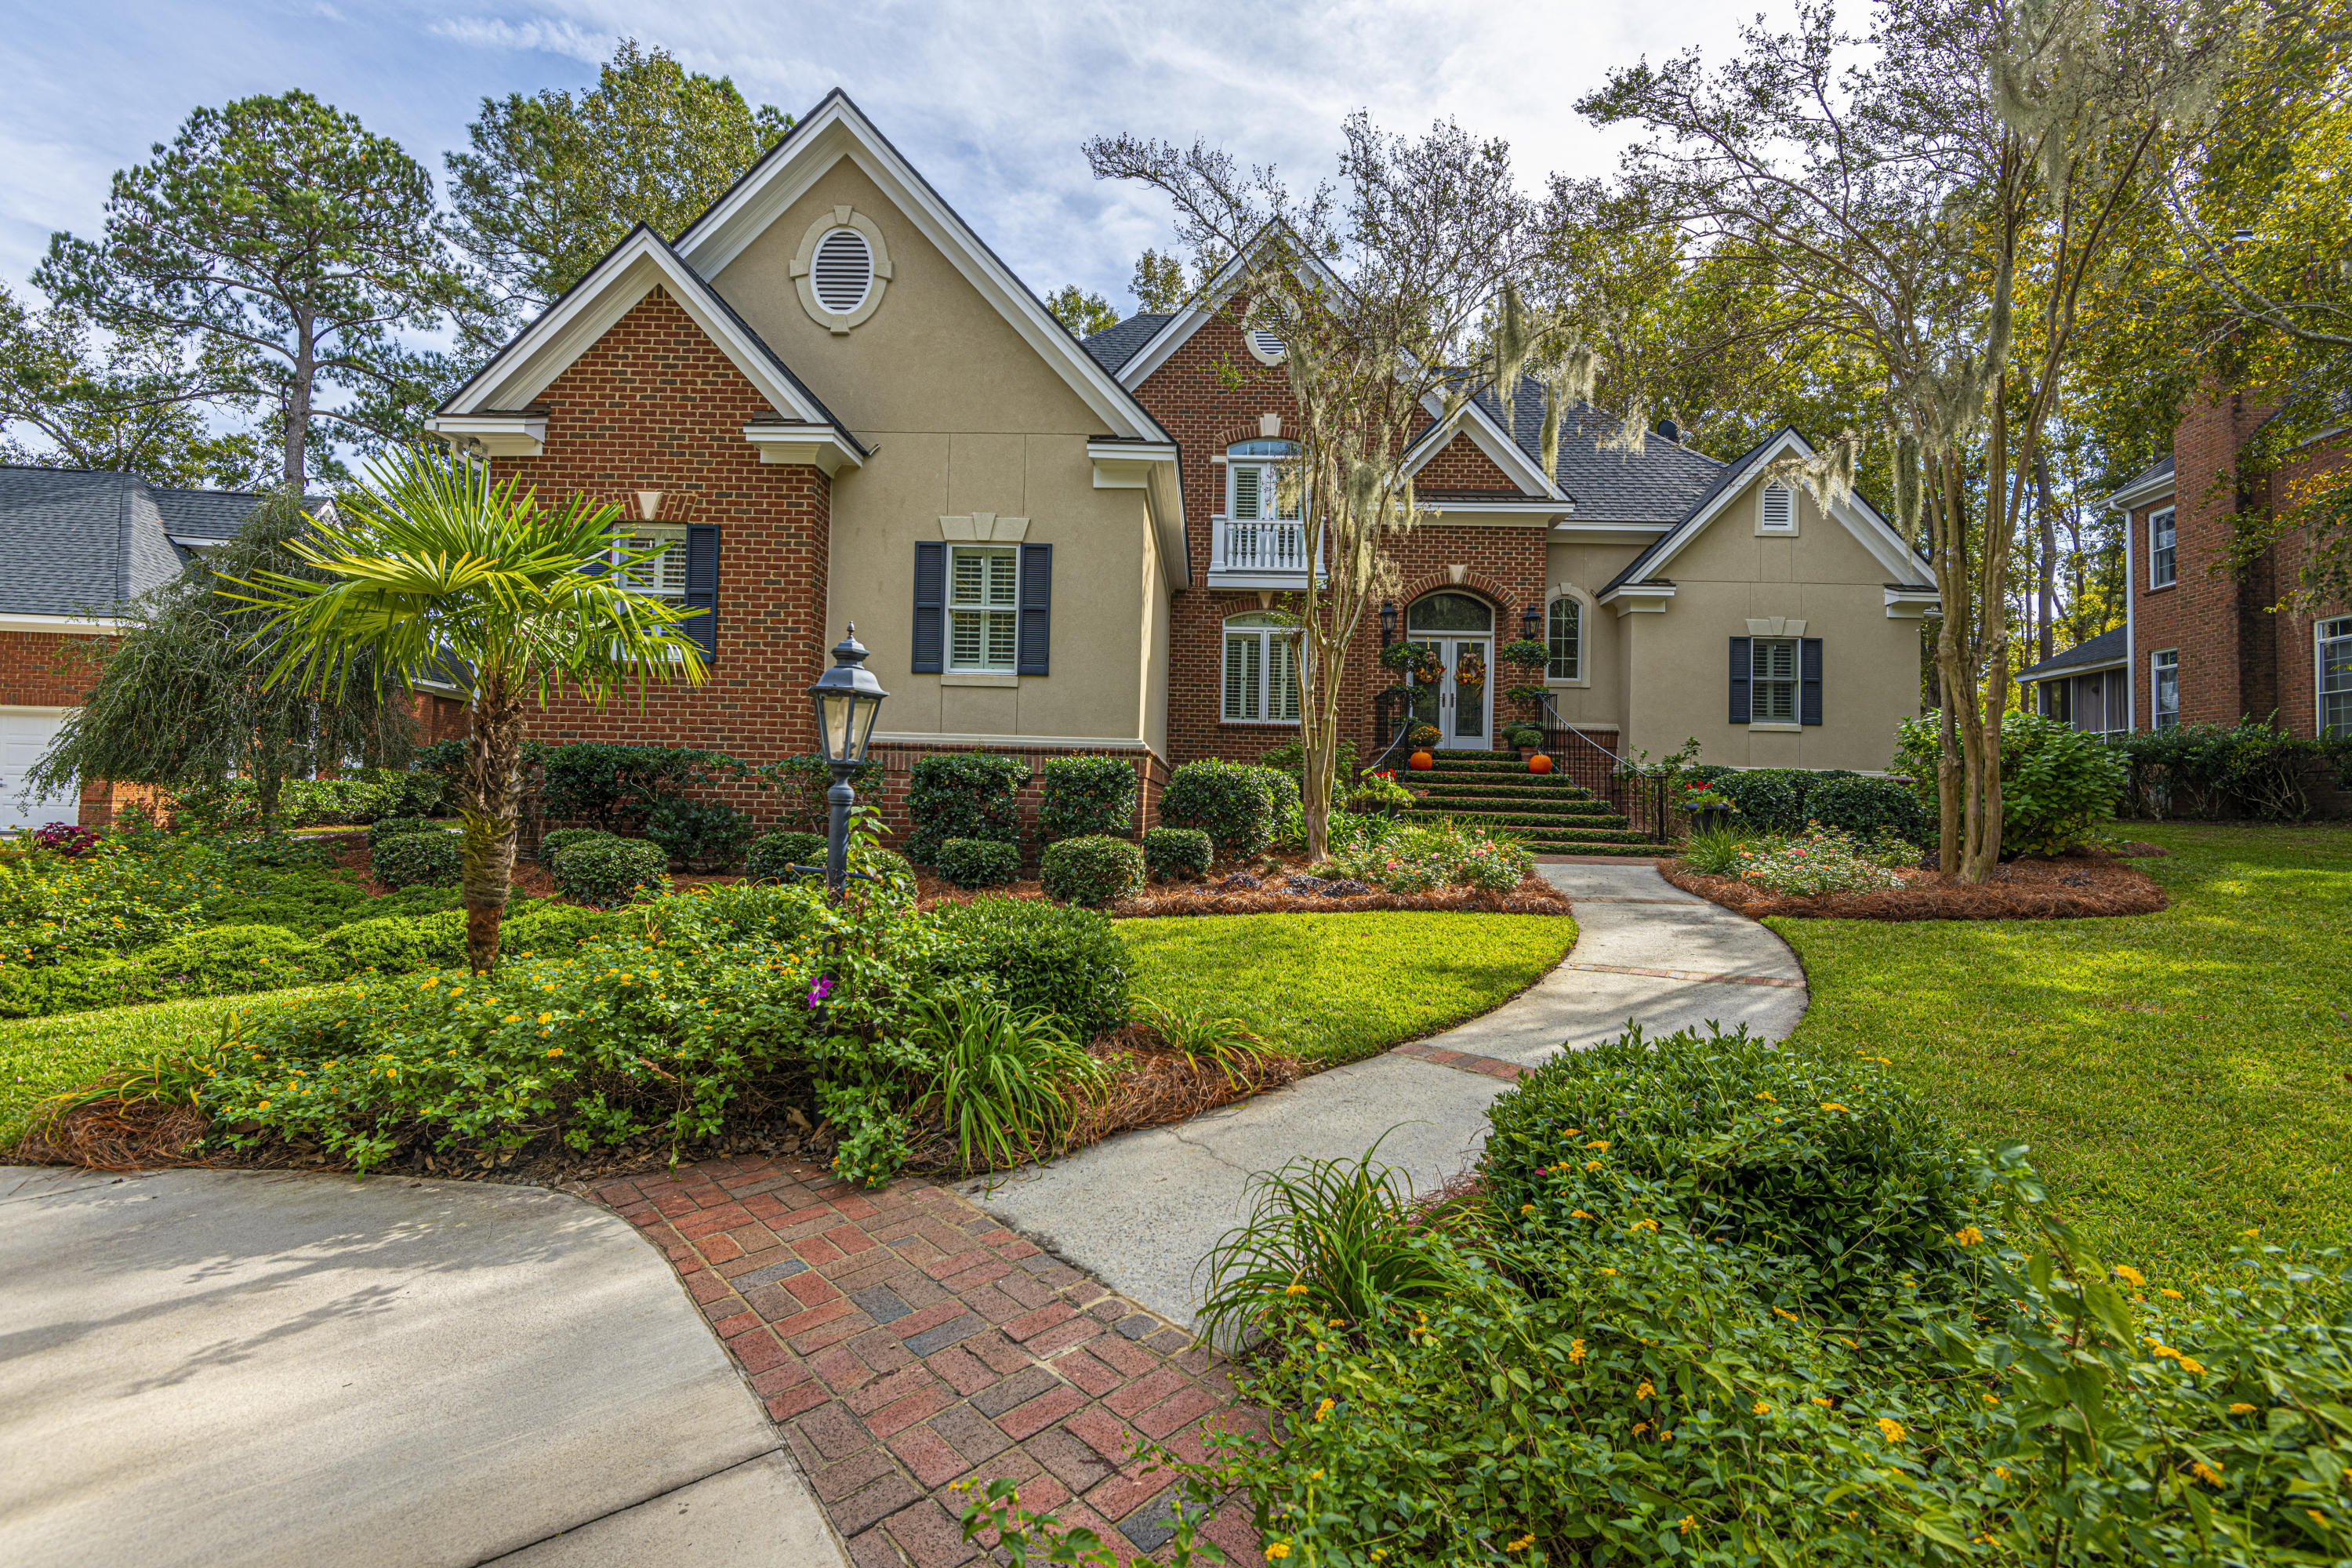 Coosaw Creek Country Club Homes For Sale - 8642 Fairway Woods, North Charleston, SC - 37